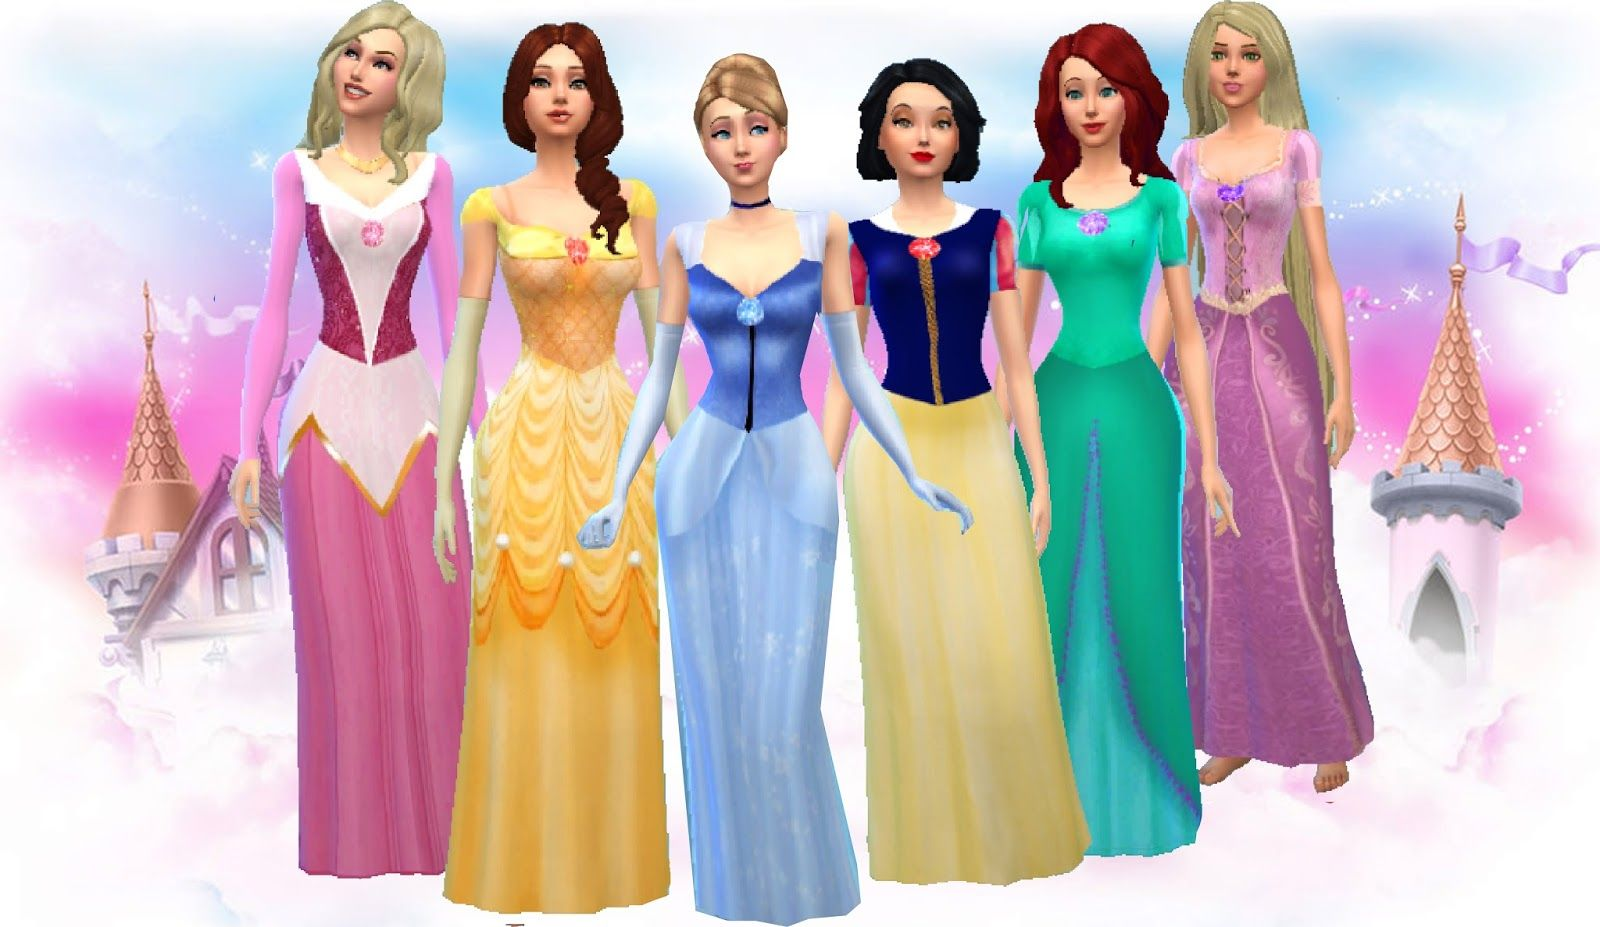 Sims 3 Cartoon Characters : My sims disney and flamenco dresses by maleficaxd